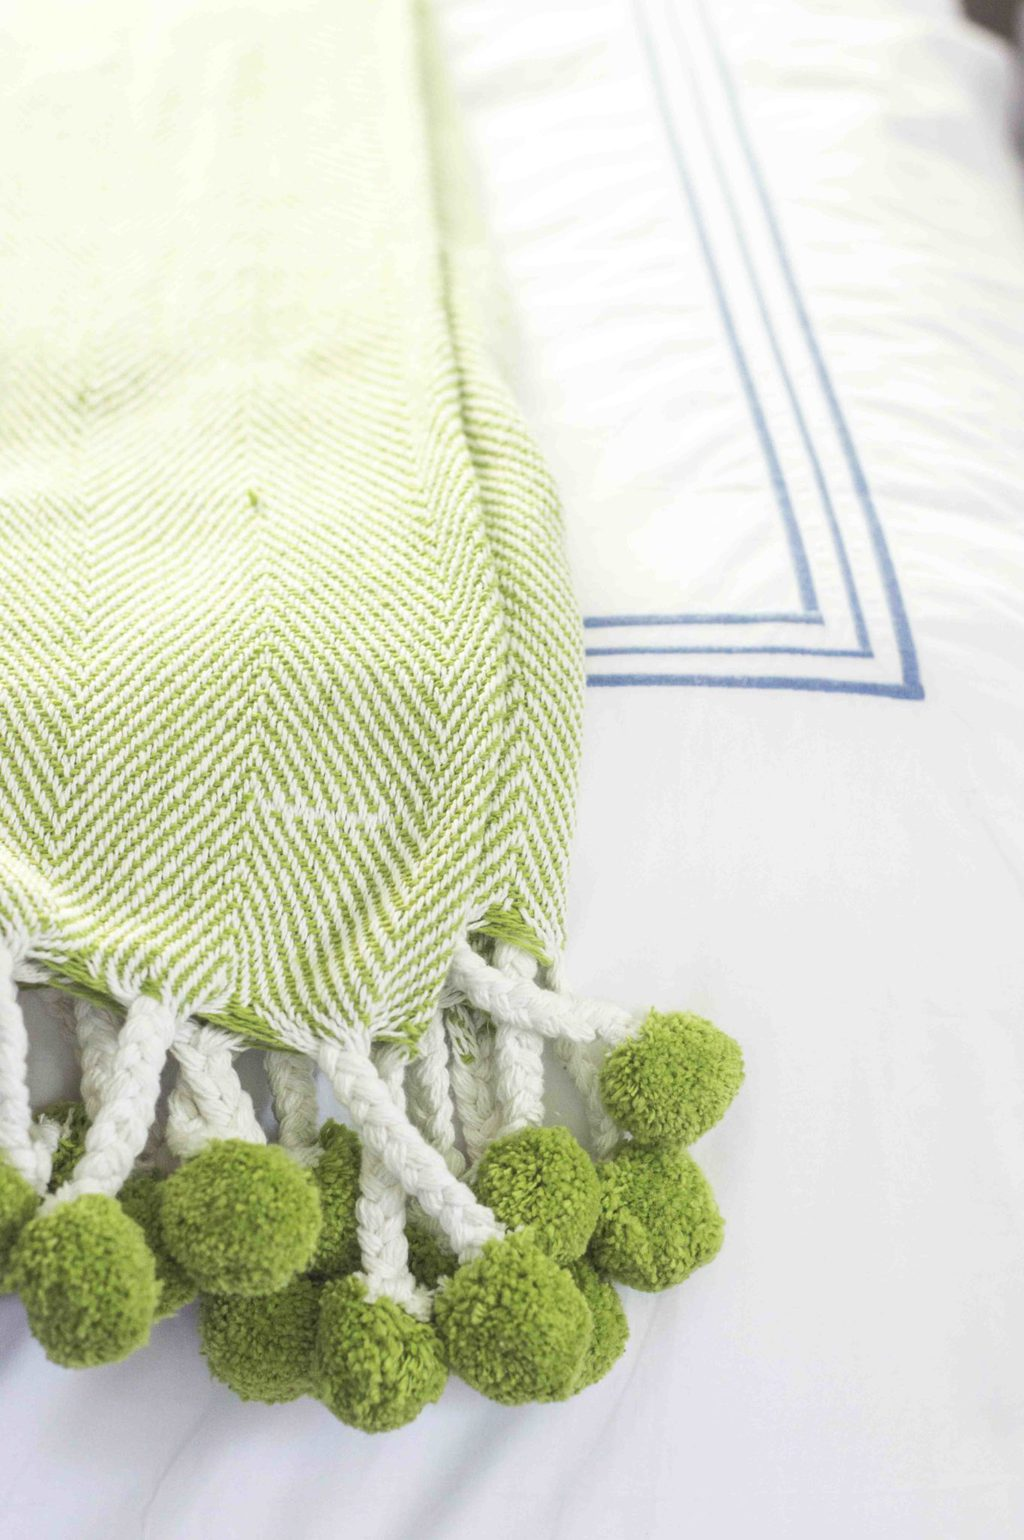 Lime green herringbone pom pom throw blanket from Waiting on Martha via Thou Swell @thouswellblog